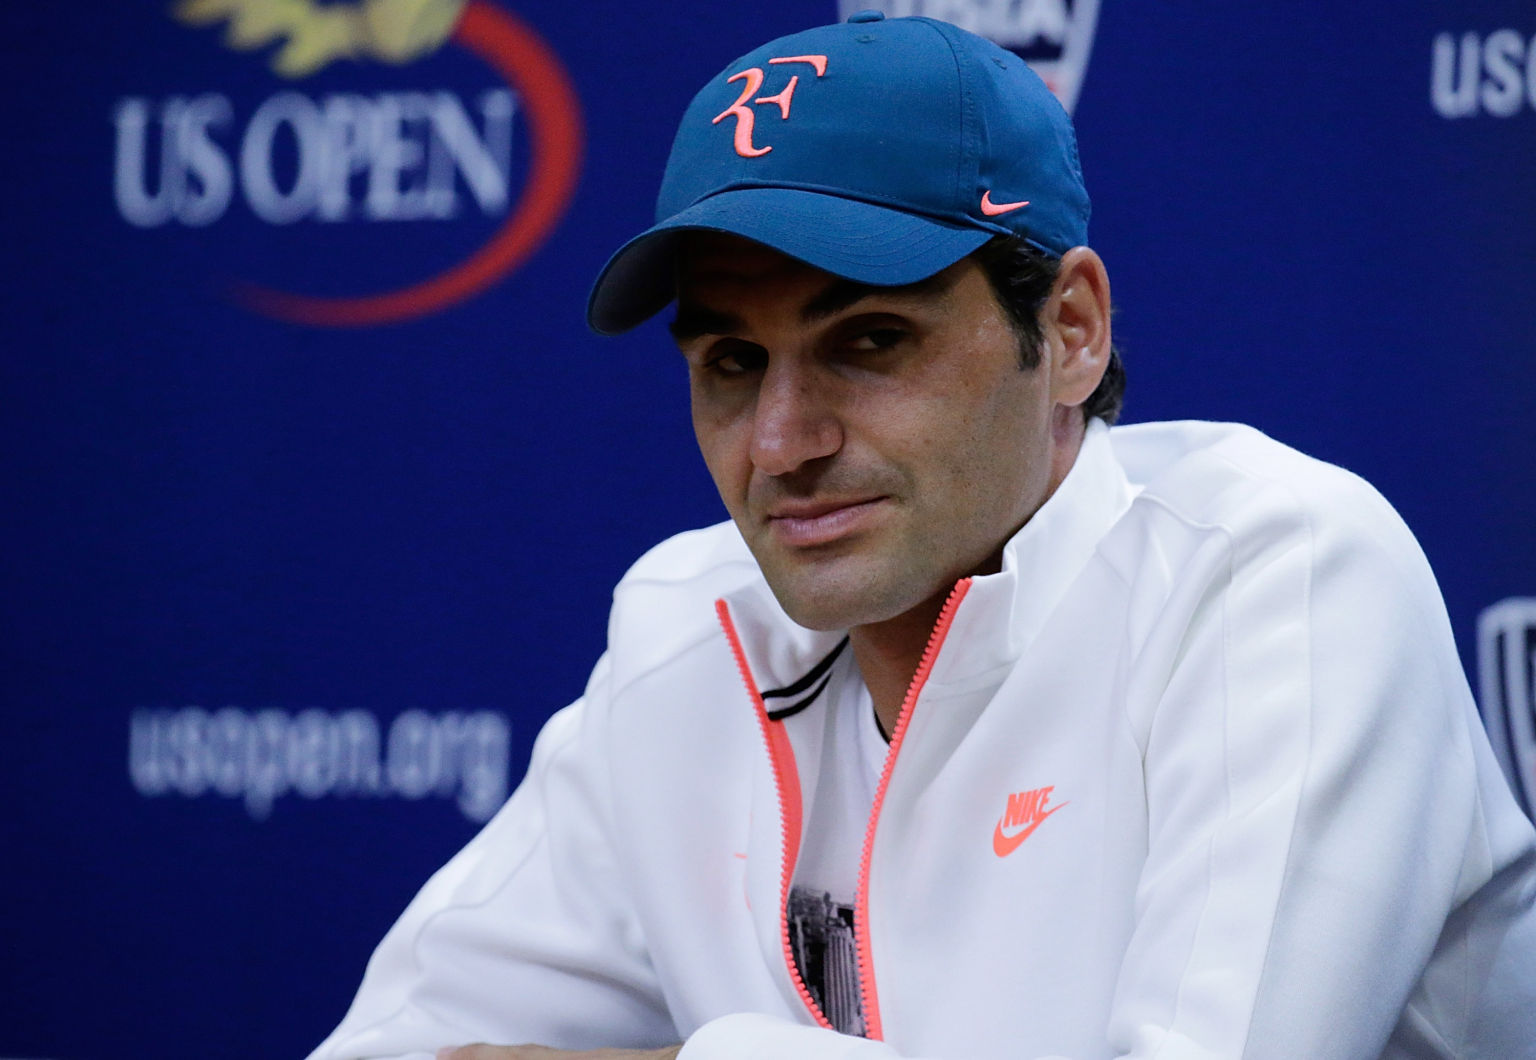 NEW YORK, NY - AUGUST 29:  Professional tennis player Roger Federer attends a press conference during the 2015 US Open at the USTA Billie Jean King National Tennis Center on August 29, 2015 in the Queens borough of New York City.  (Photo by John Lamparski/WireImage)